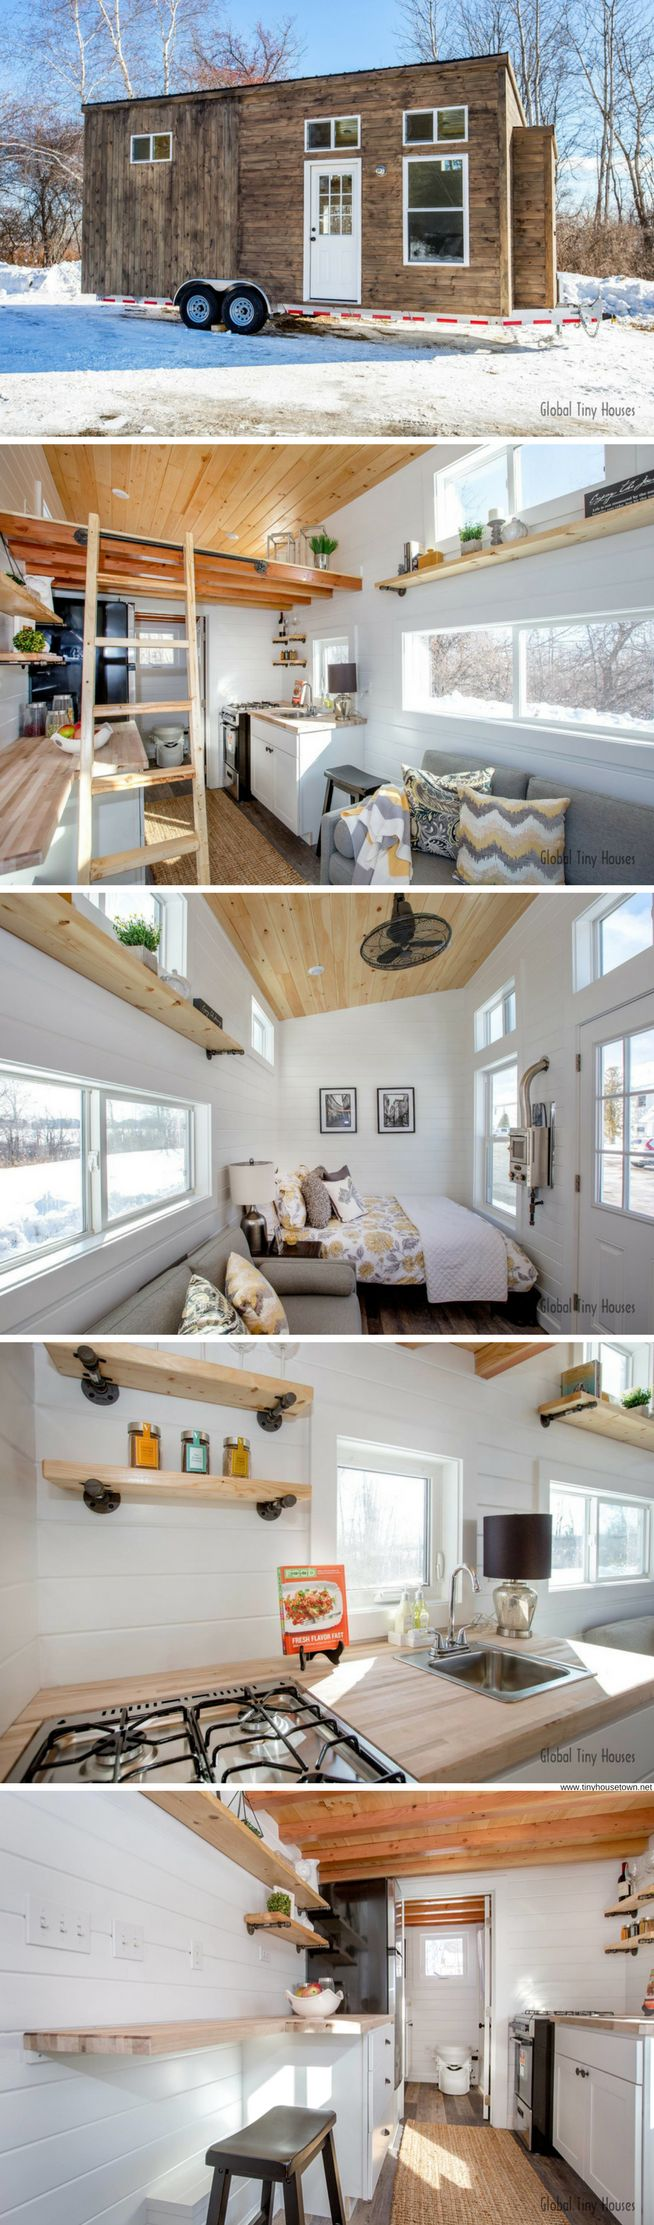 A bright modern/rustic tiny house available from Global Tiny Houses